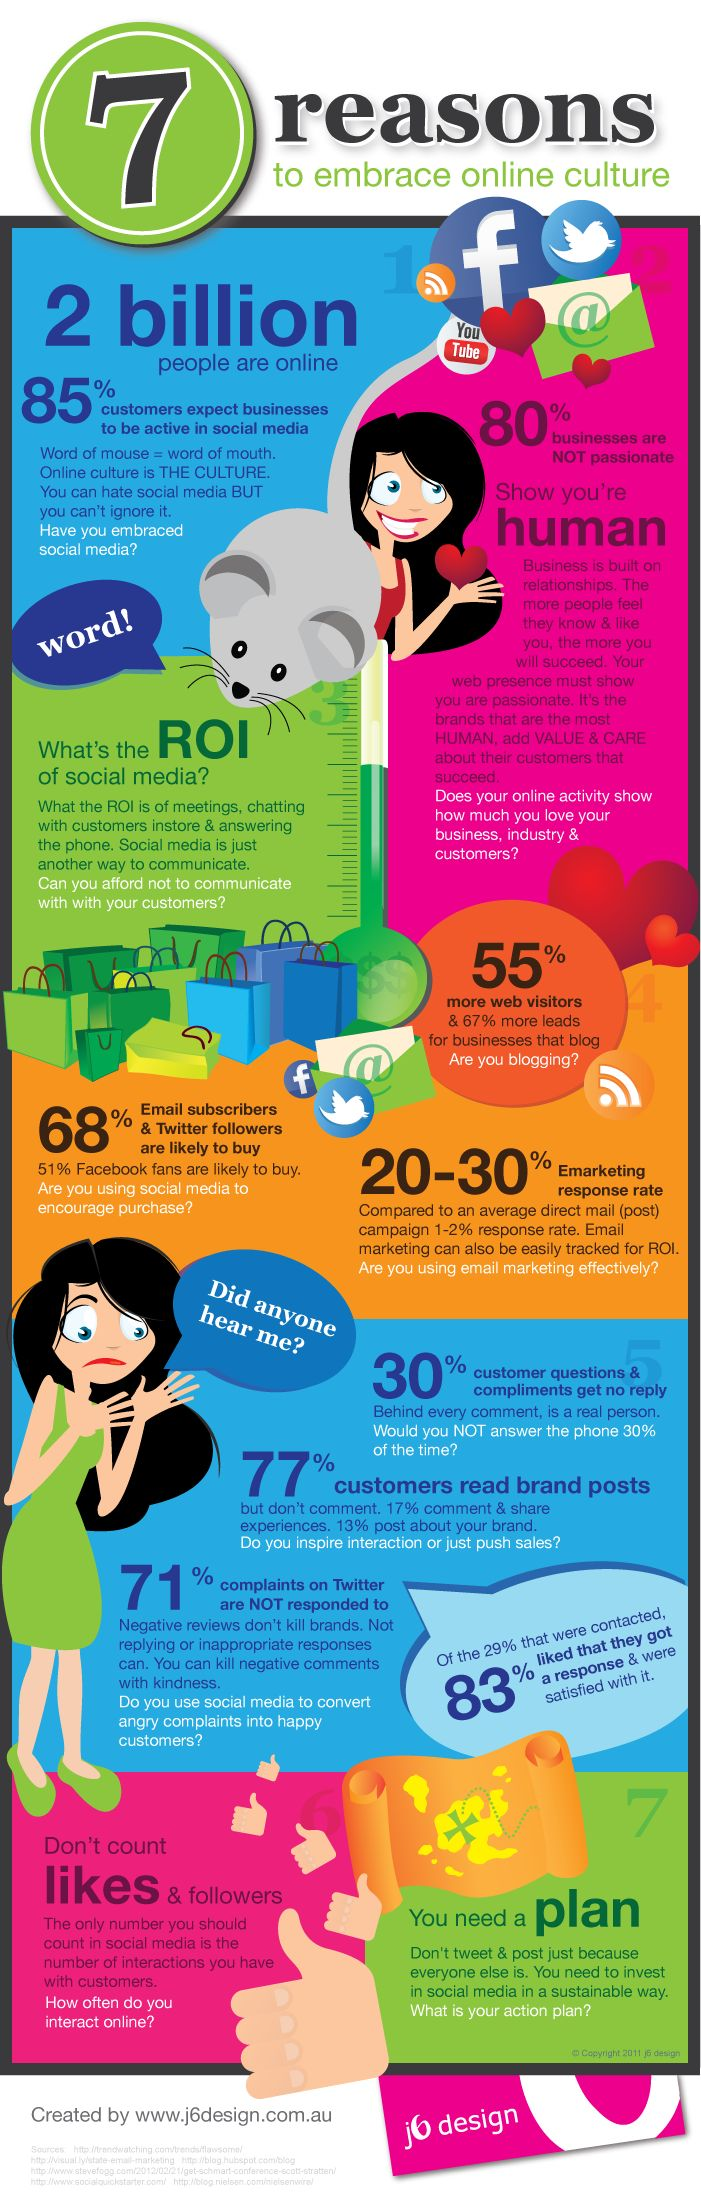 7 Reasons to Embrace the Social CultureSocial Media Tips, Digital Marketing, Embrace Online, Weight Loss, Online Culture, Social Media Infographic, Small Businesses, Embrace Social, Socialmedia Infographic